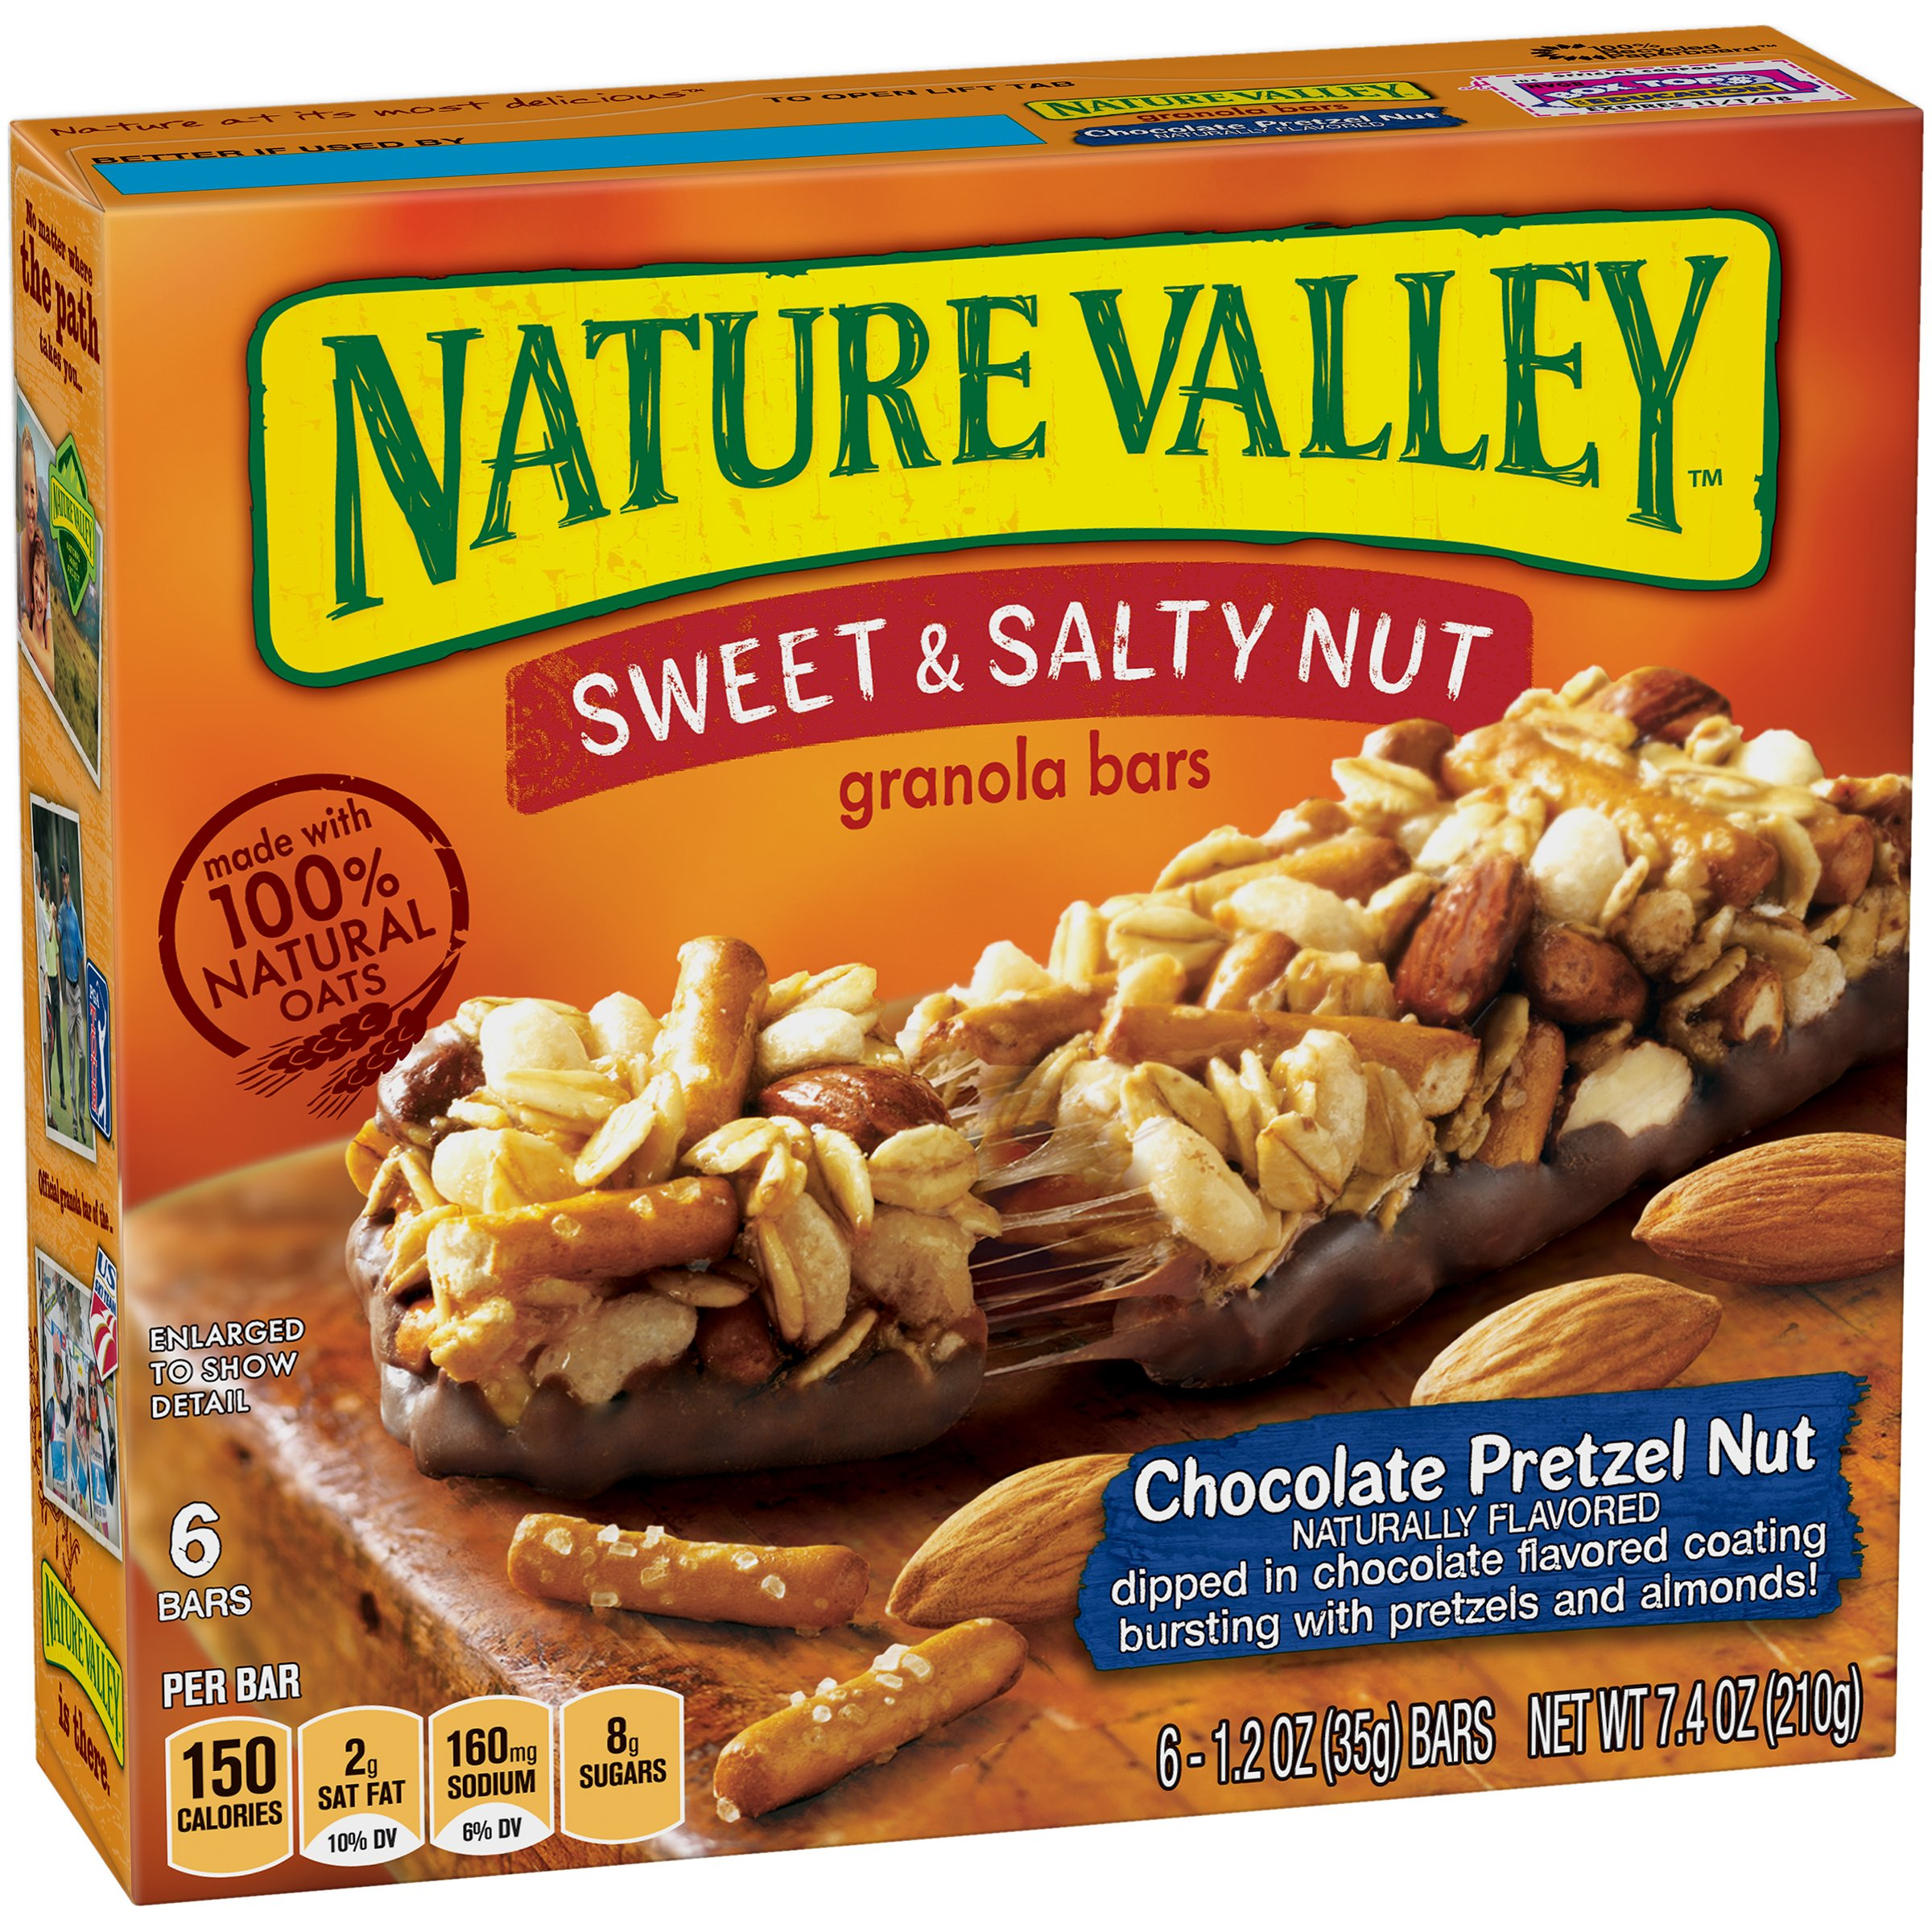 Nature Valley Granola Bars, Sweet and Salty Nut, Chocolate Pretzel Nut, 6 Bars - 1.2 oz